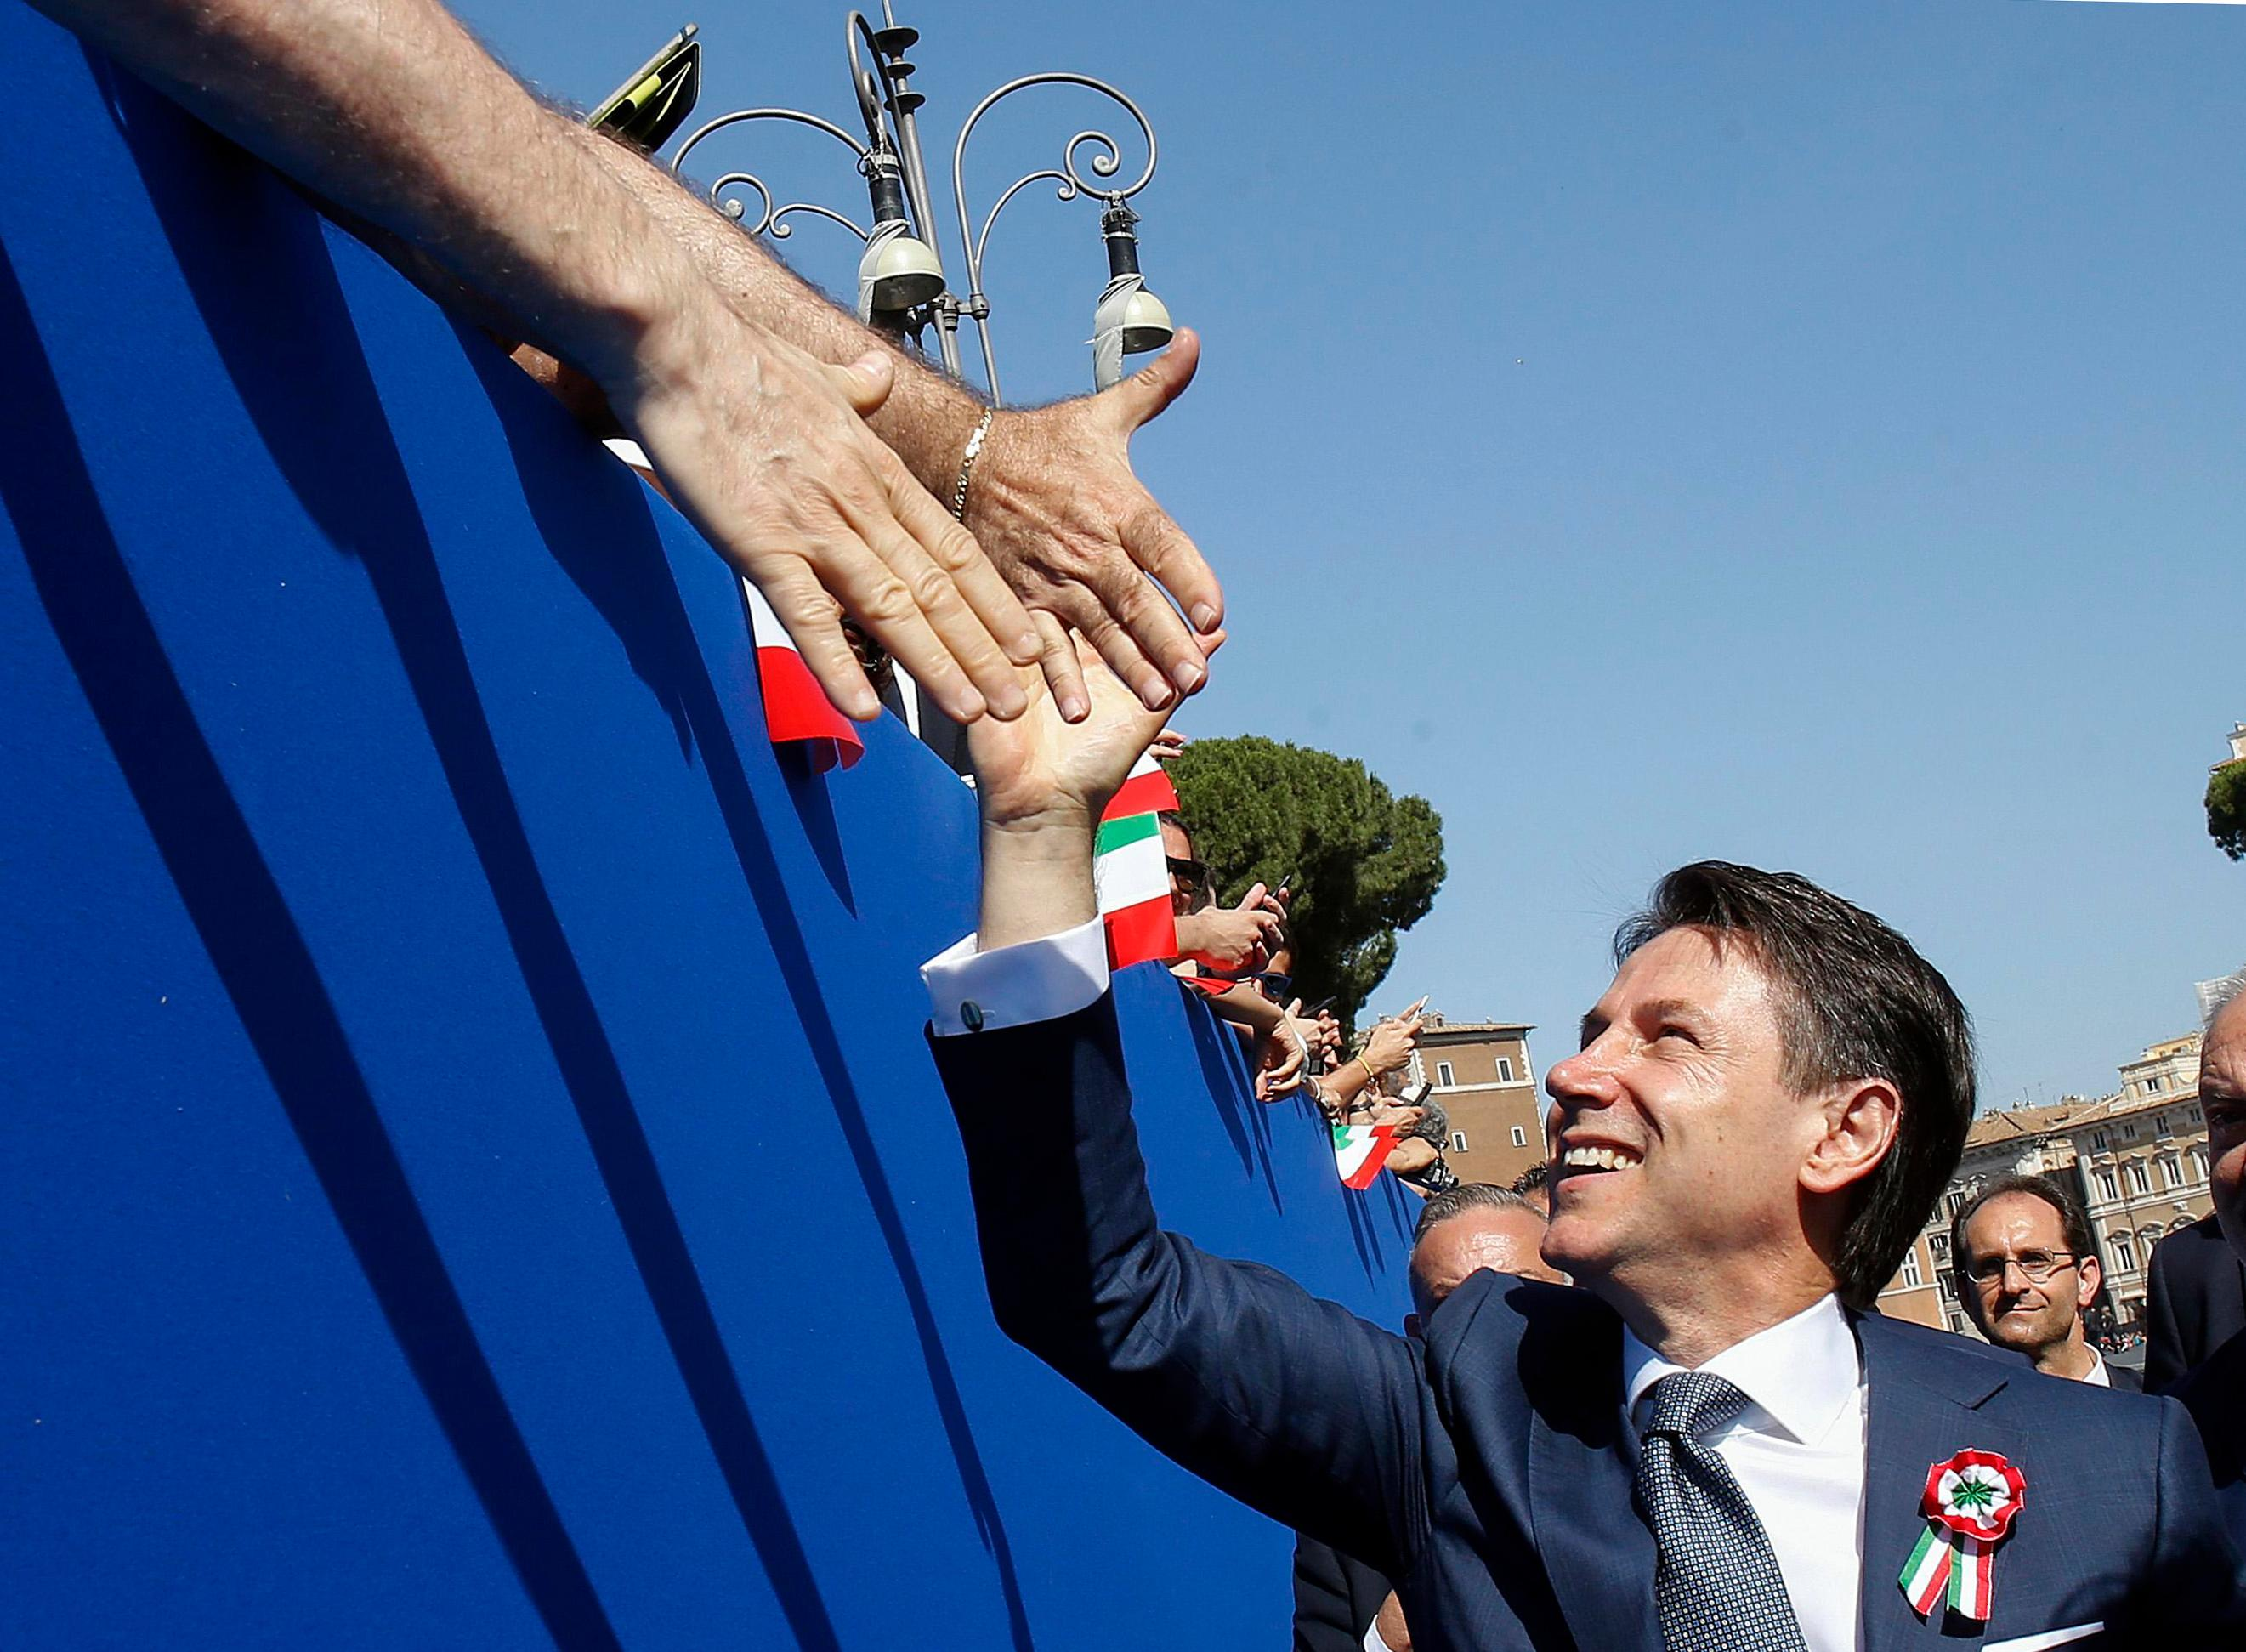 Italian Premier Giuseppe Conte is cheered by citizens on the occasion of the celebrations for Italy's Republic Day, in Rome Saturday, June 2, 2018.{ } (Fabio Frustaci/ANSA via AP)